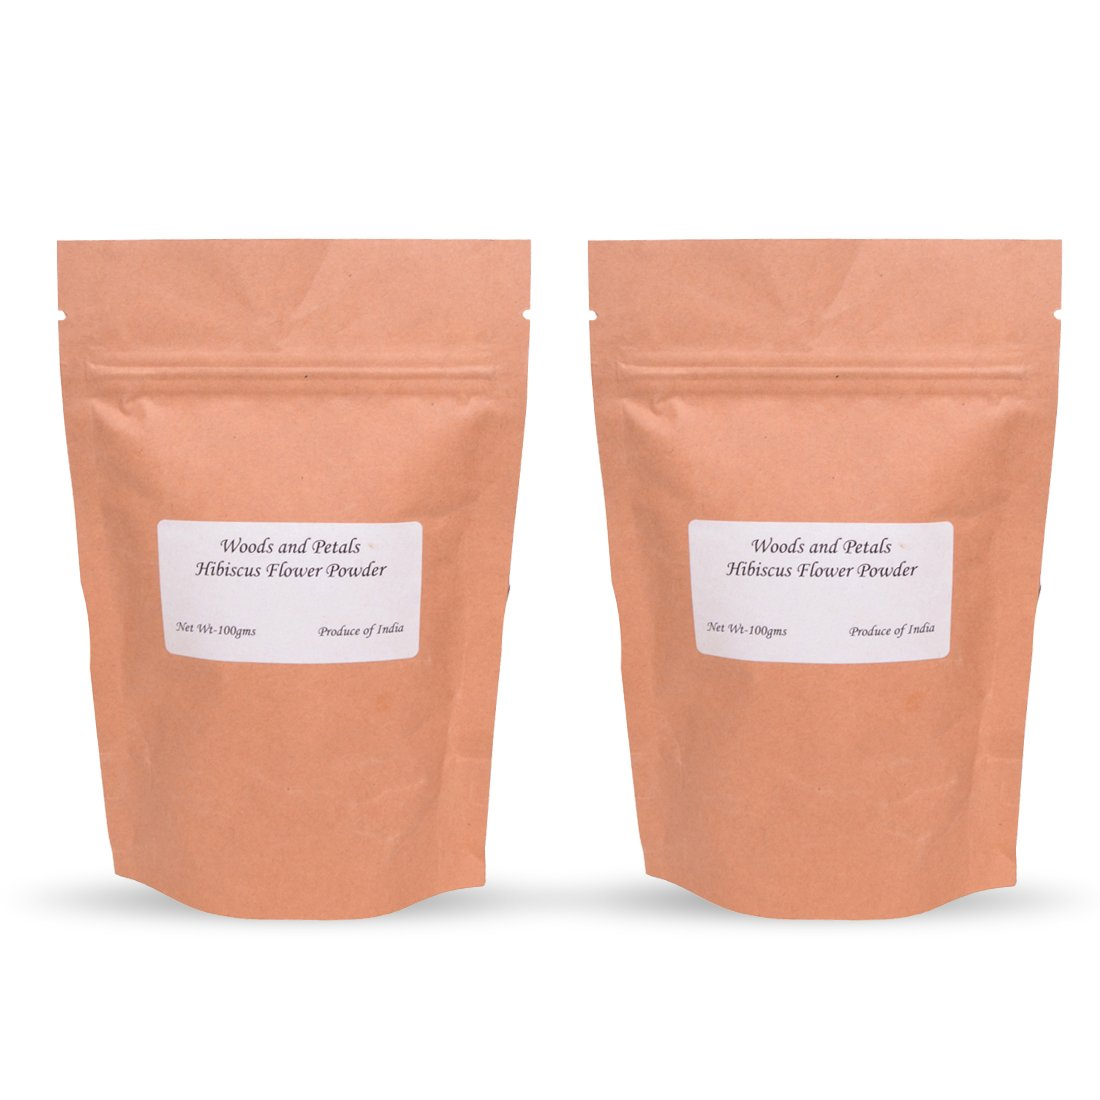 Hibiscus Flower Powder (set of 2) for hair and skin woods and petals